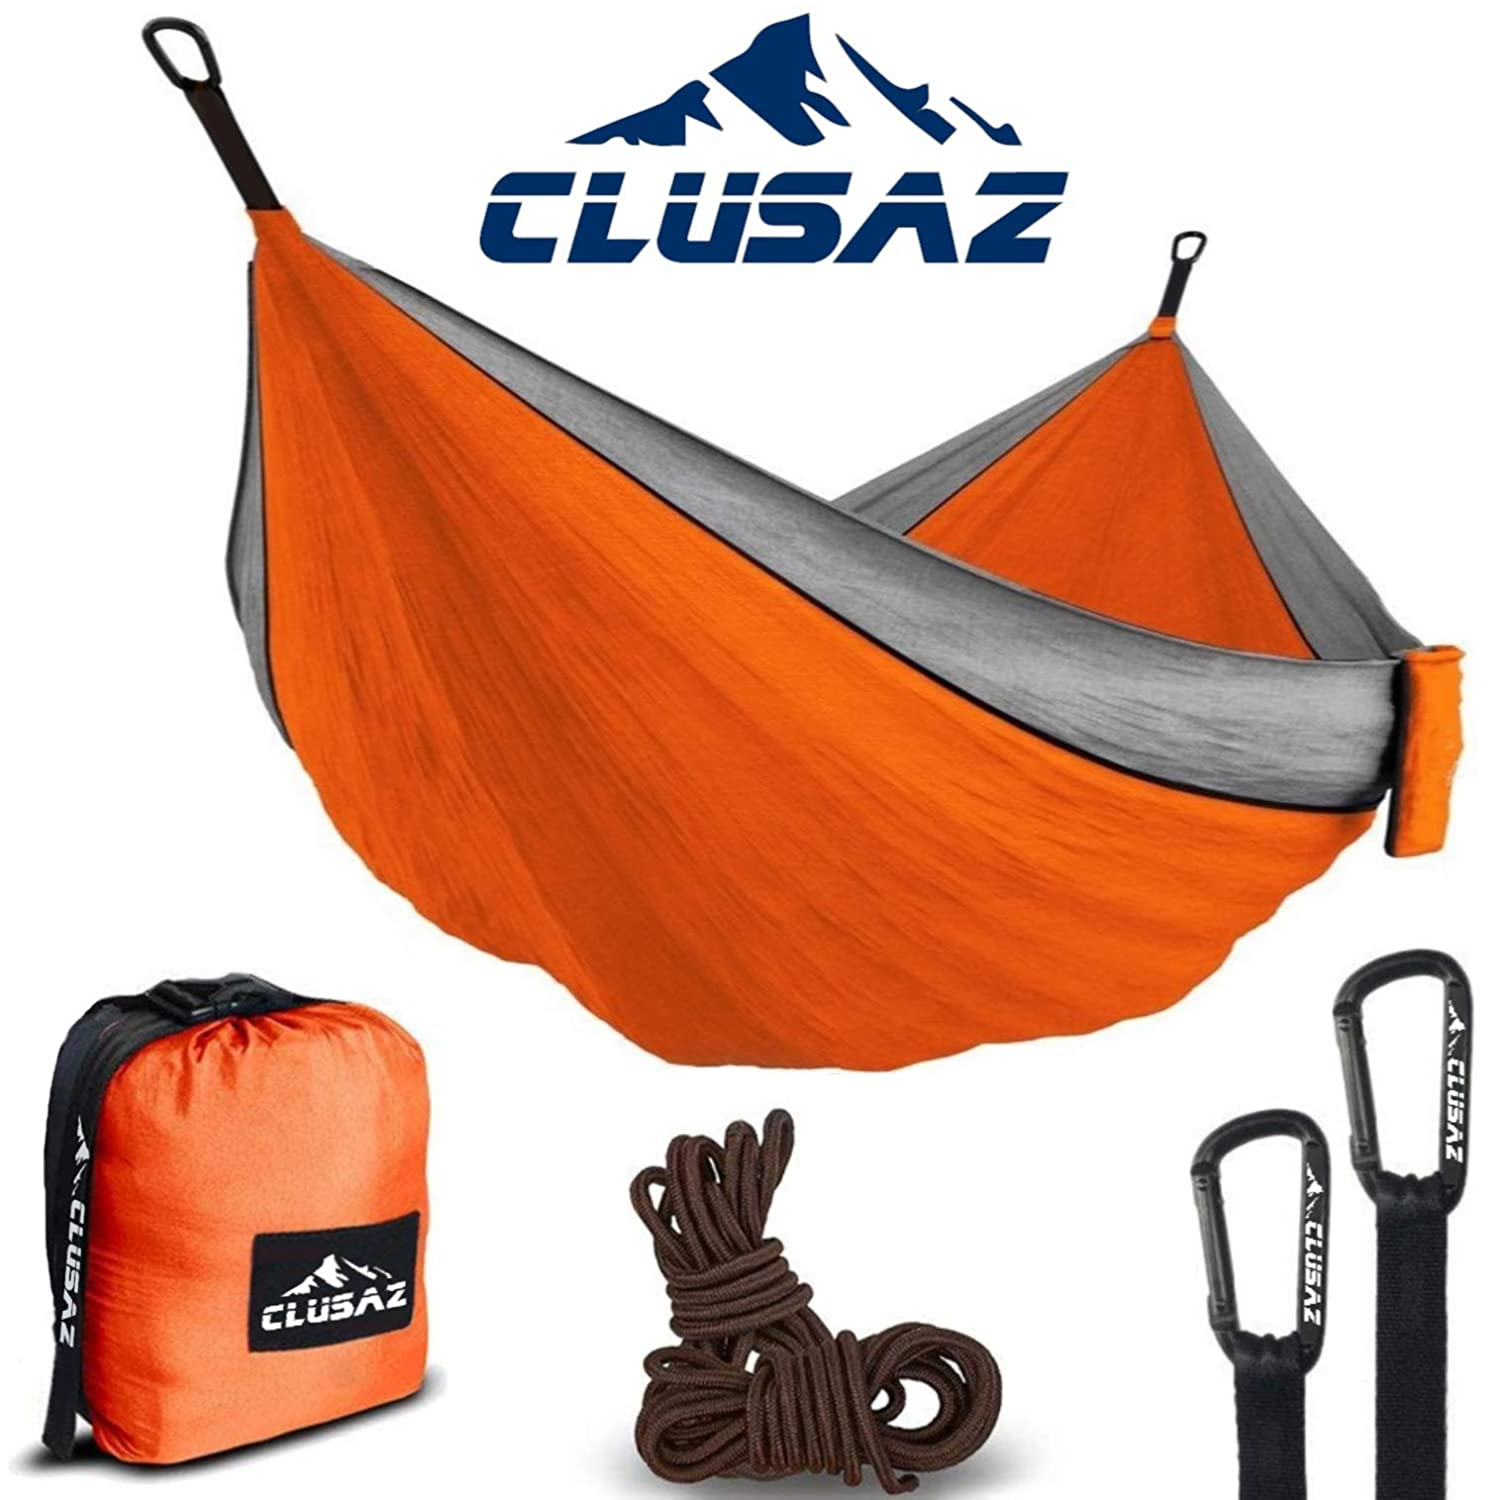 CLUSAZ Premium Hammock Parachute Ultra Lightweight 1.2 lbs in Diamond Nylon Anti-Tearing for 1 Person - includes 2 Anti-Scratch Carabiners and 2 Ropes 10 feet - 10 Years WARRANTY